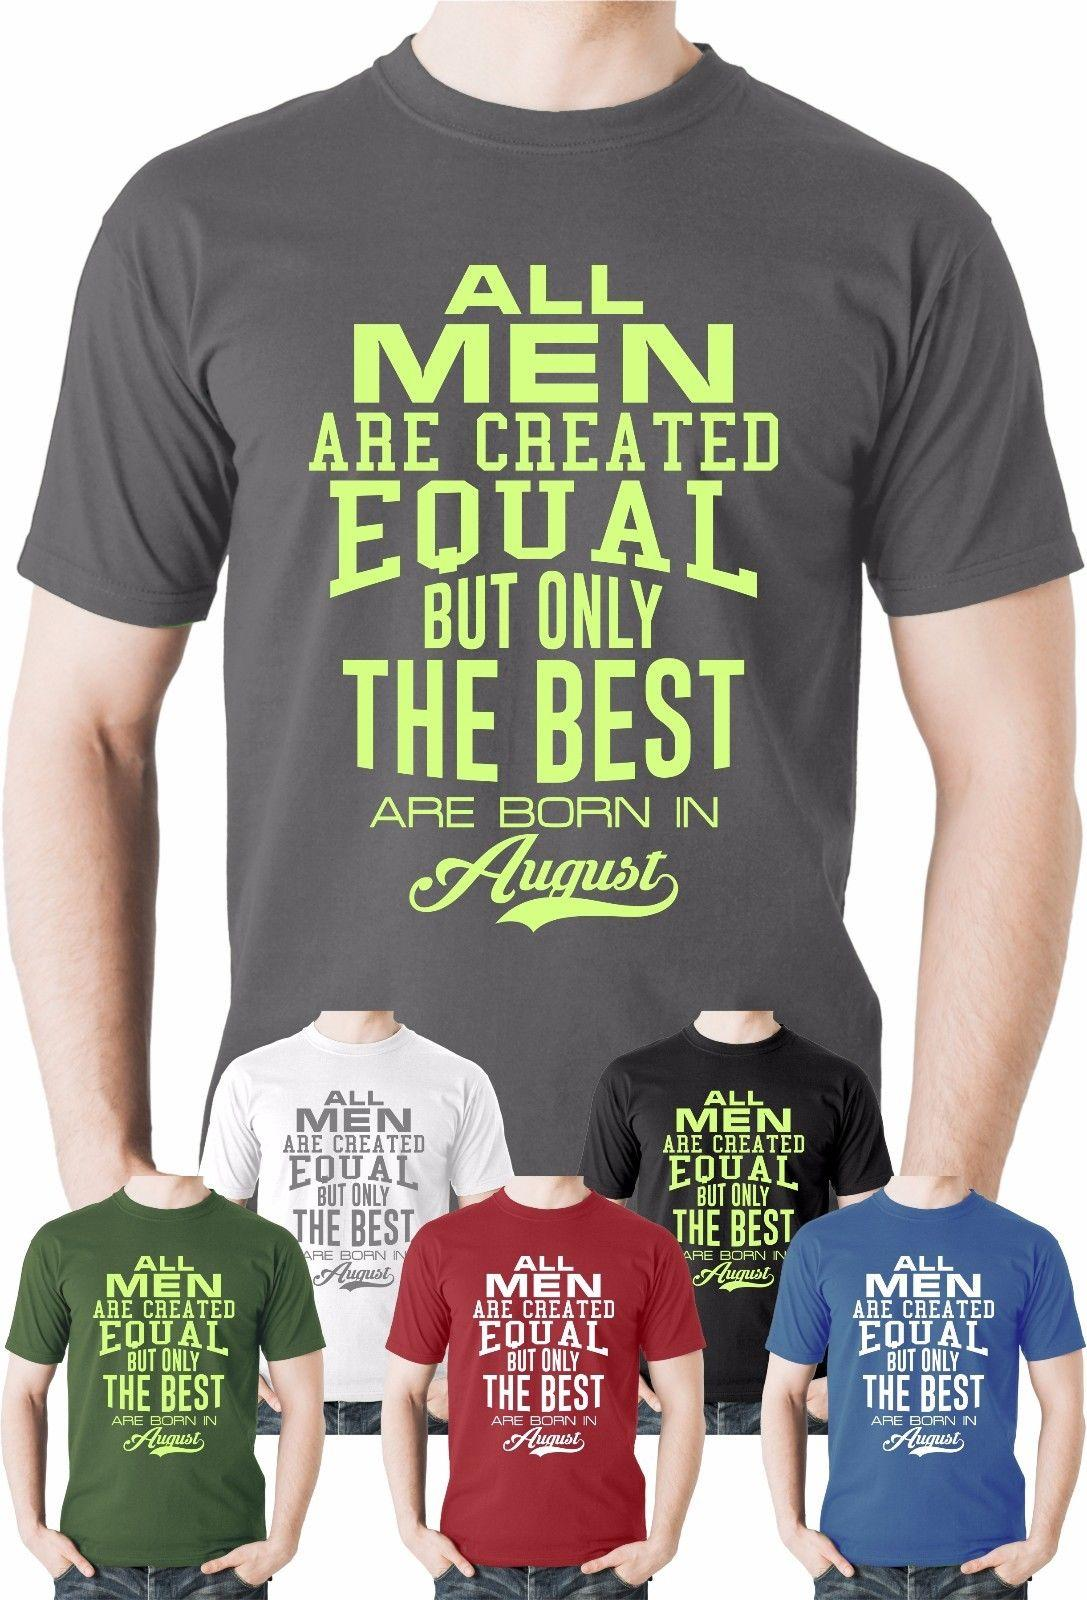 2018 New Mens All Men Are Created Equal T Shirt Birthday Month Top Gift Present Humour Funny Tee Shirts Make Your Own Design Crazy